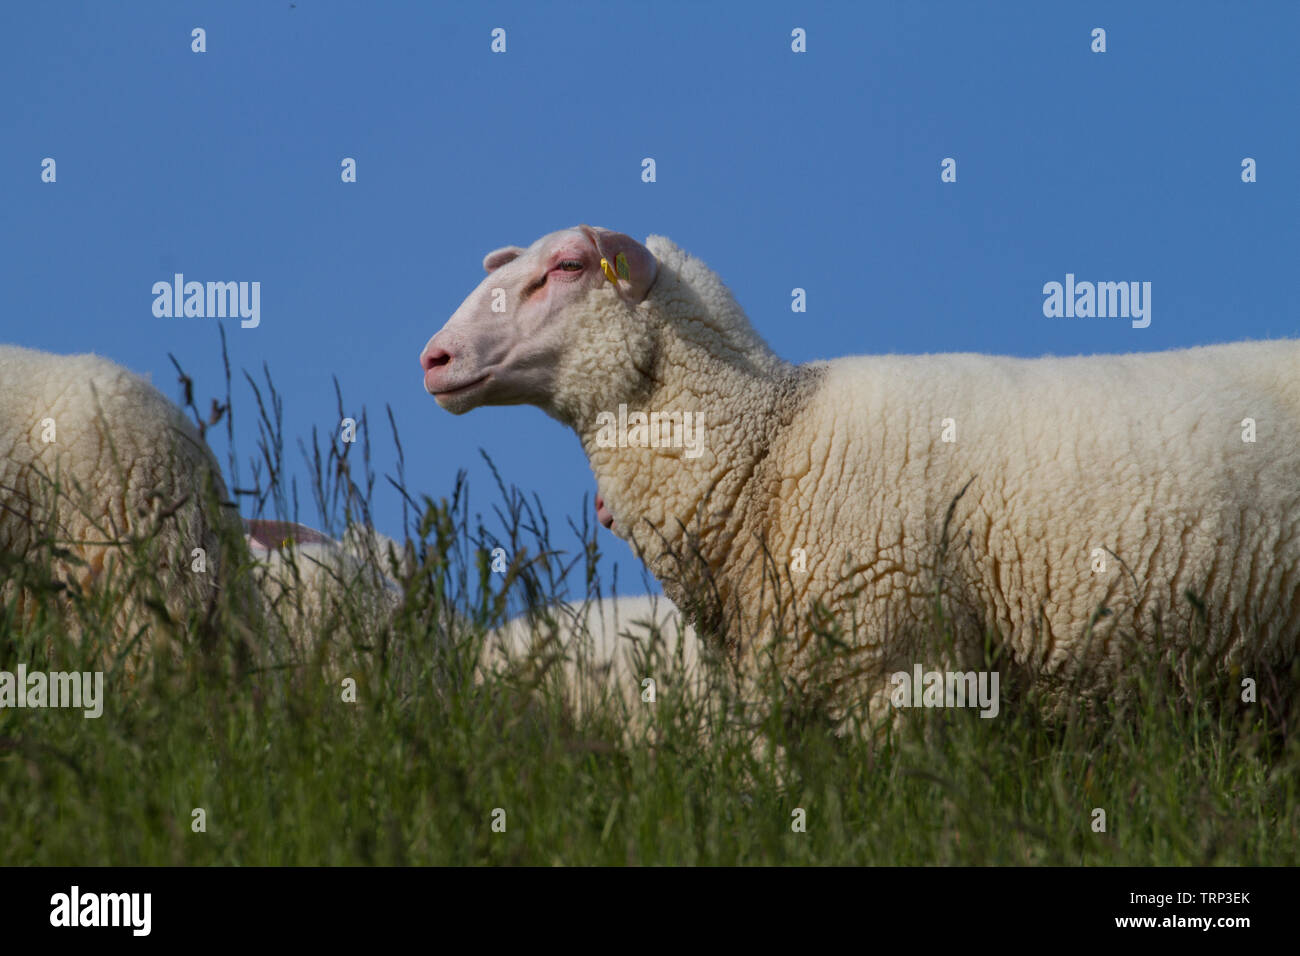 Sheep against a blue sky. East Frisia, Lower Saxony. Germany. - Stock Image